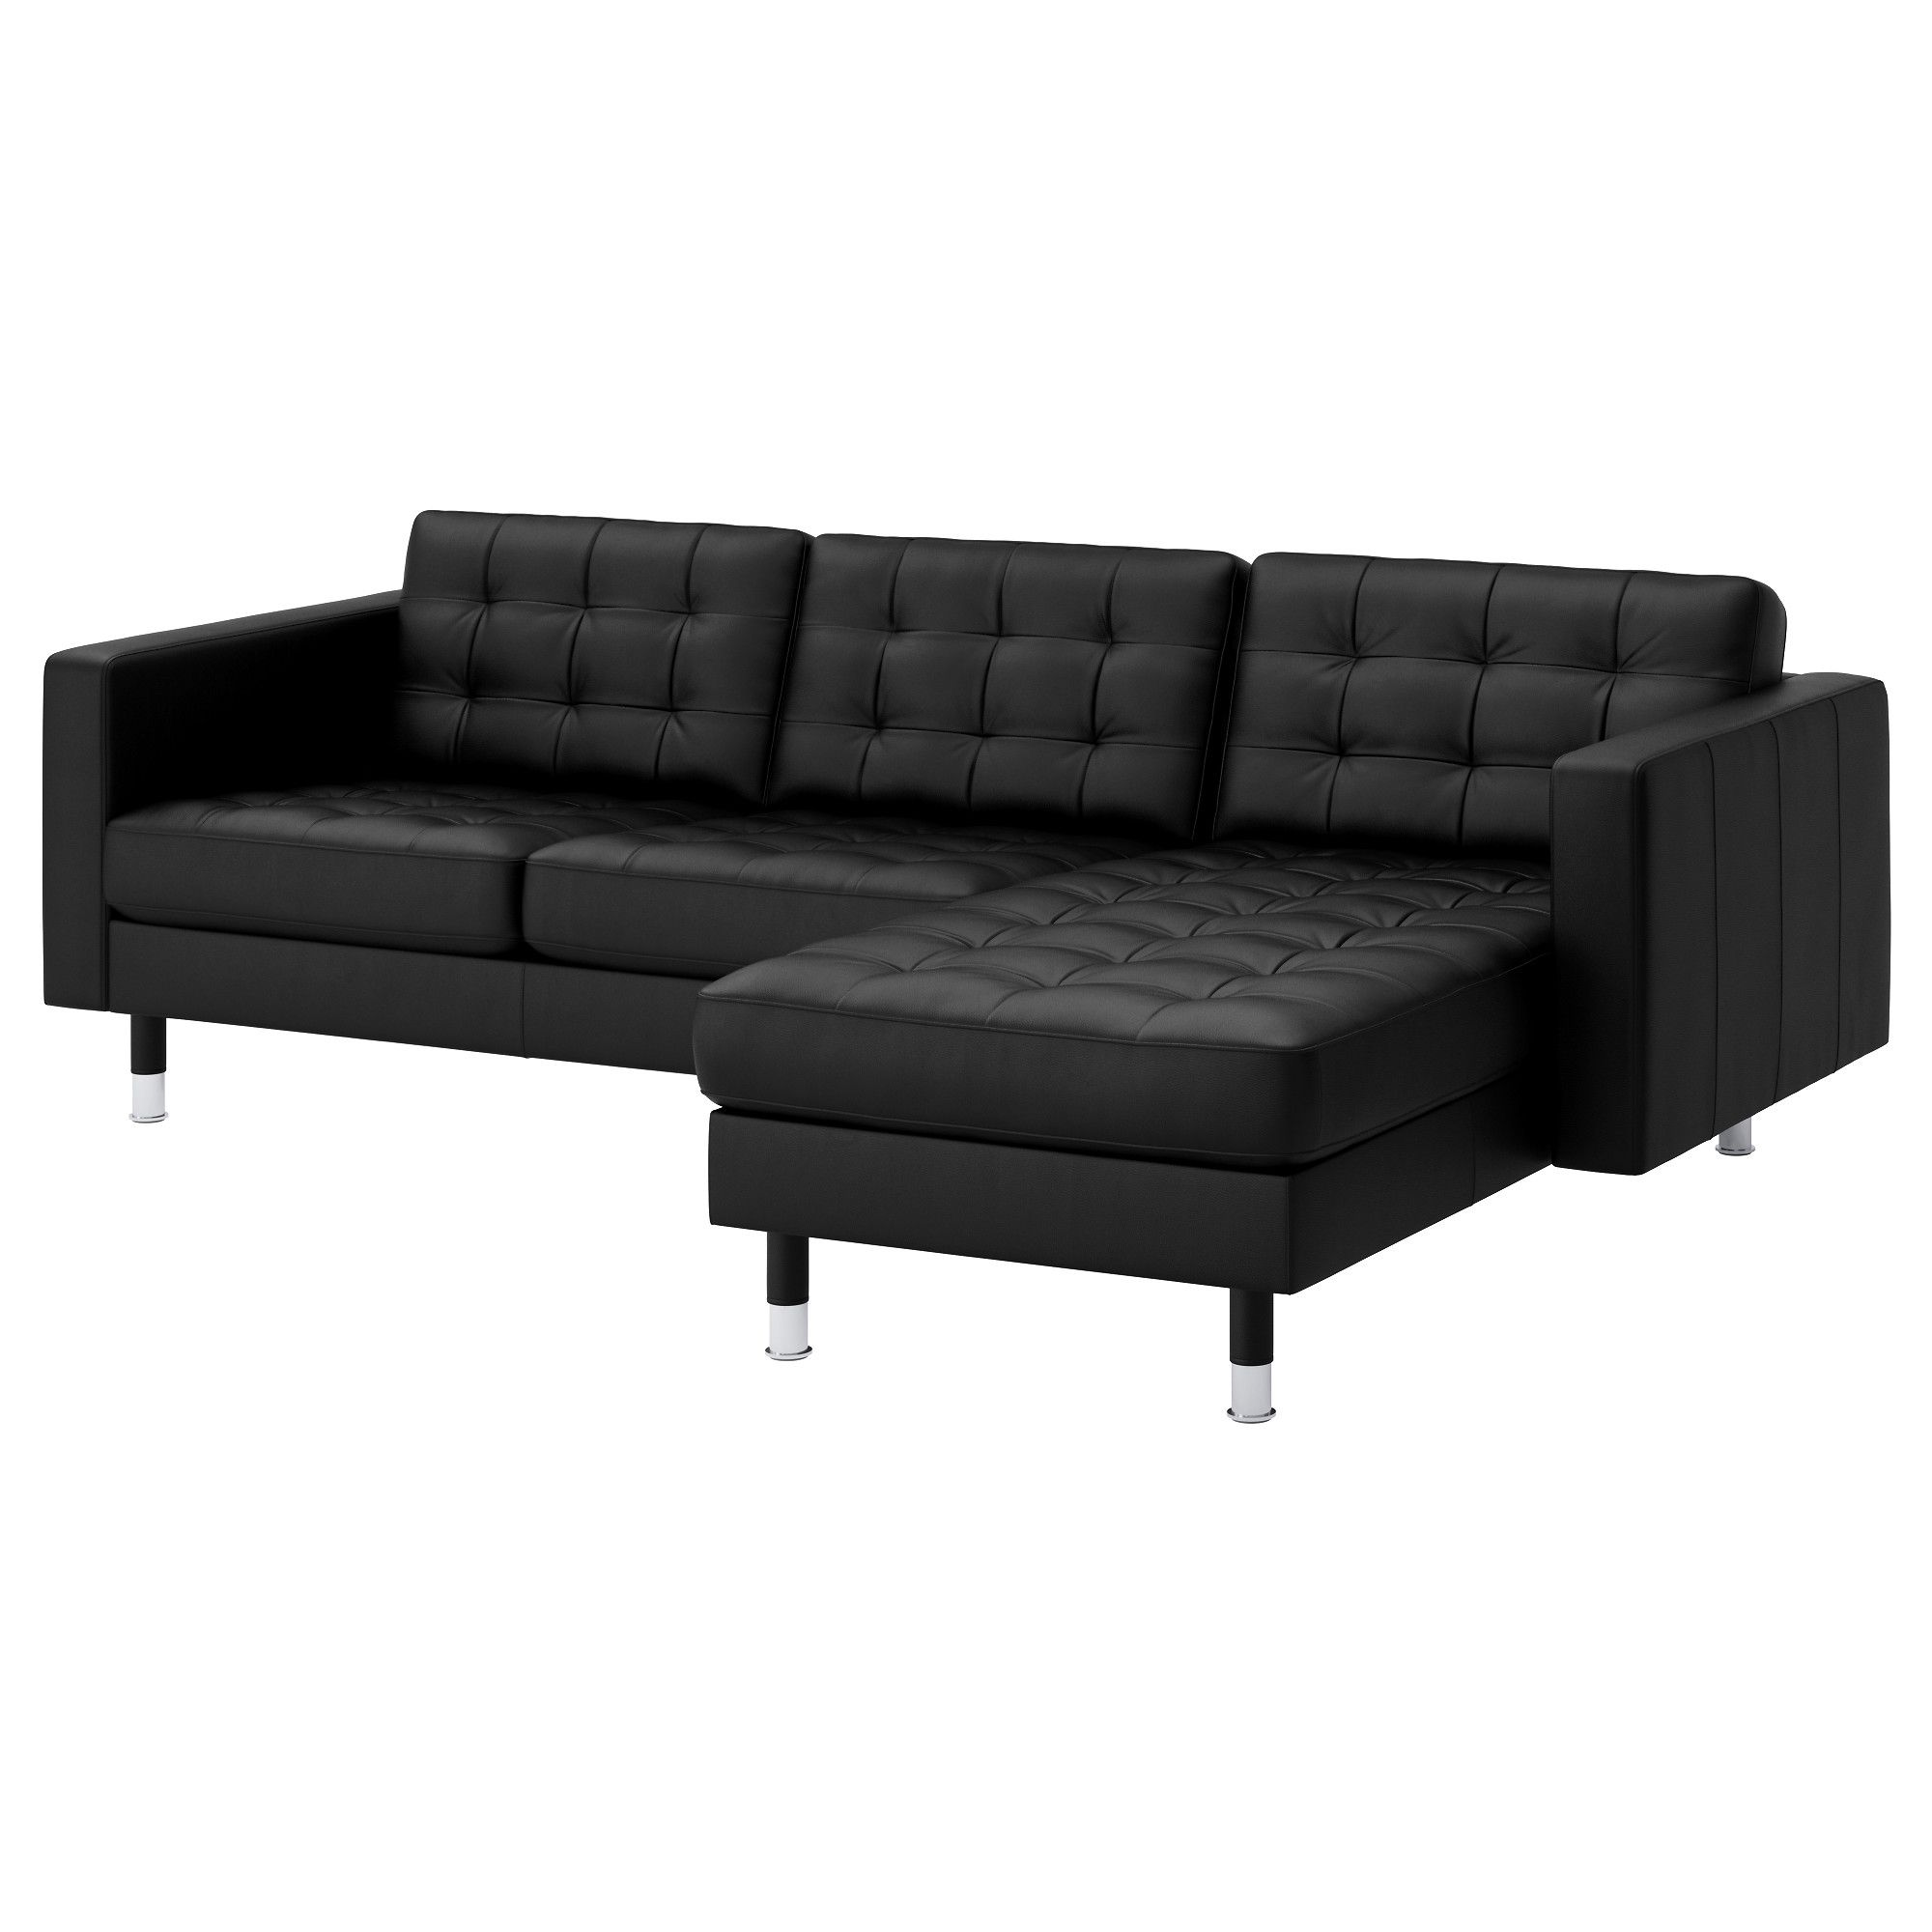 LANDSKRONA 3 seat sofa With chaise longue grann bomstad black metal